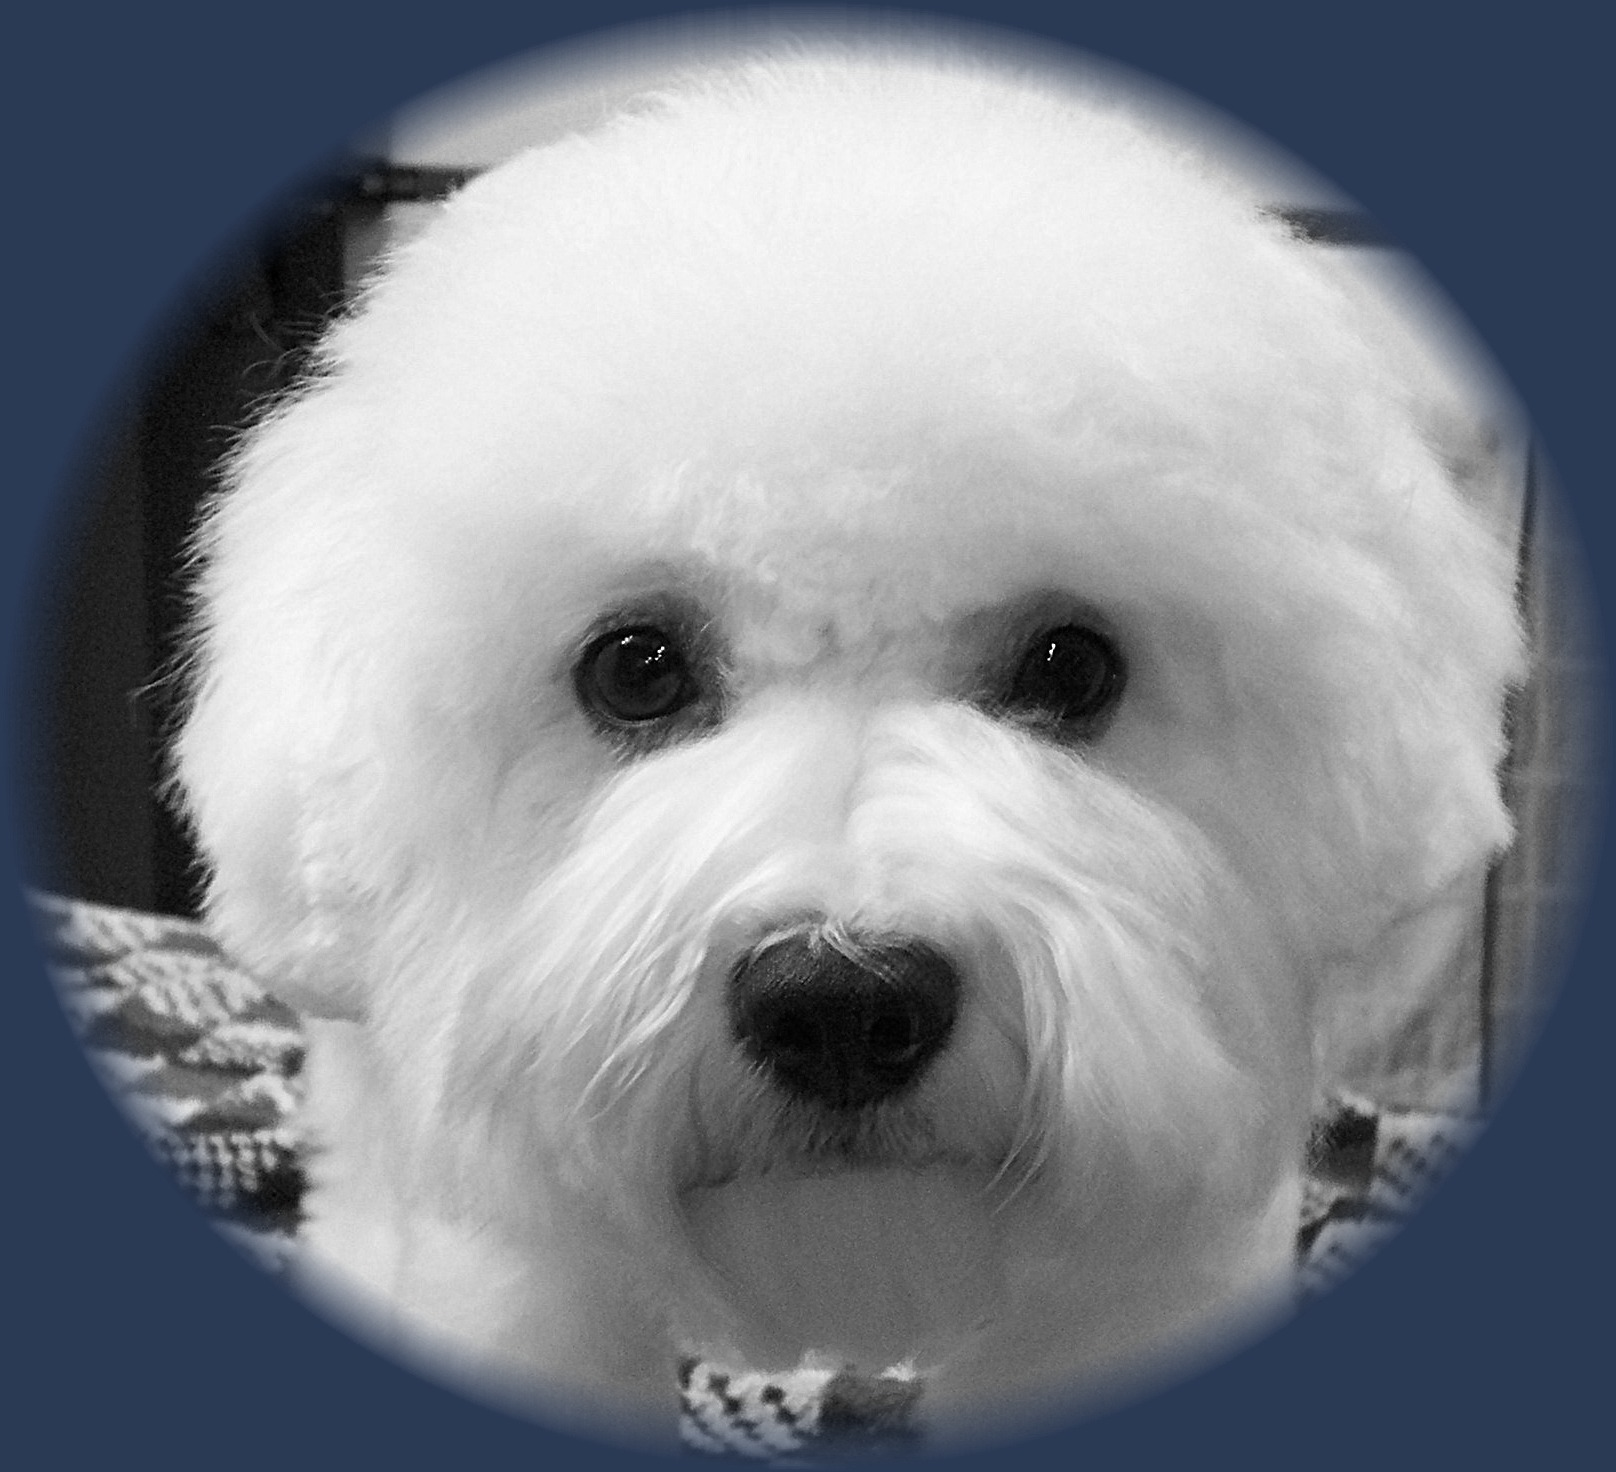 Troubles Bichon with Champion bloodlines